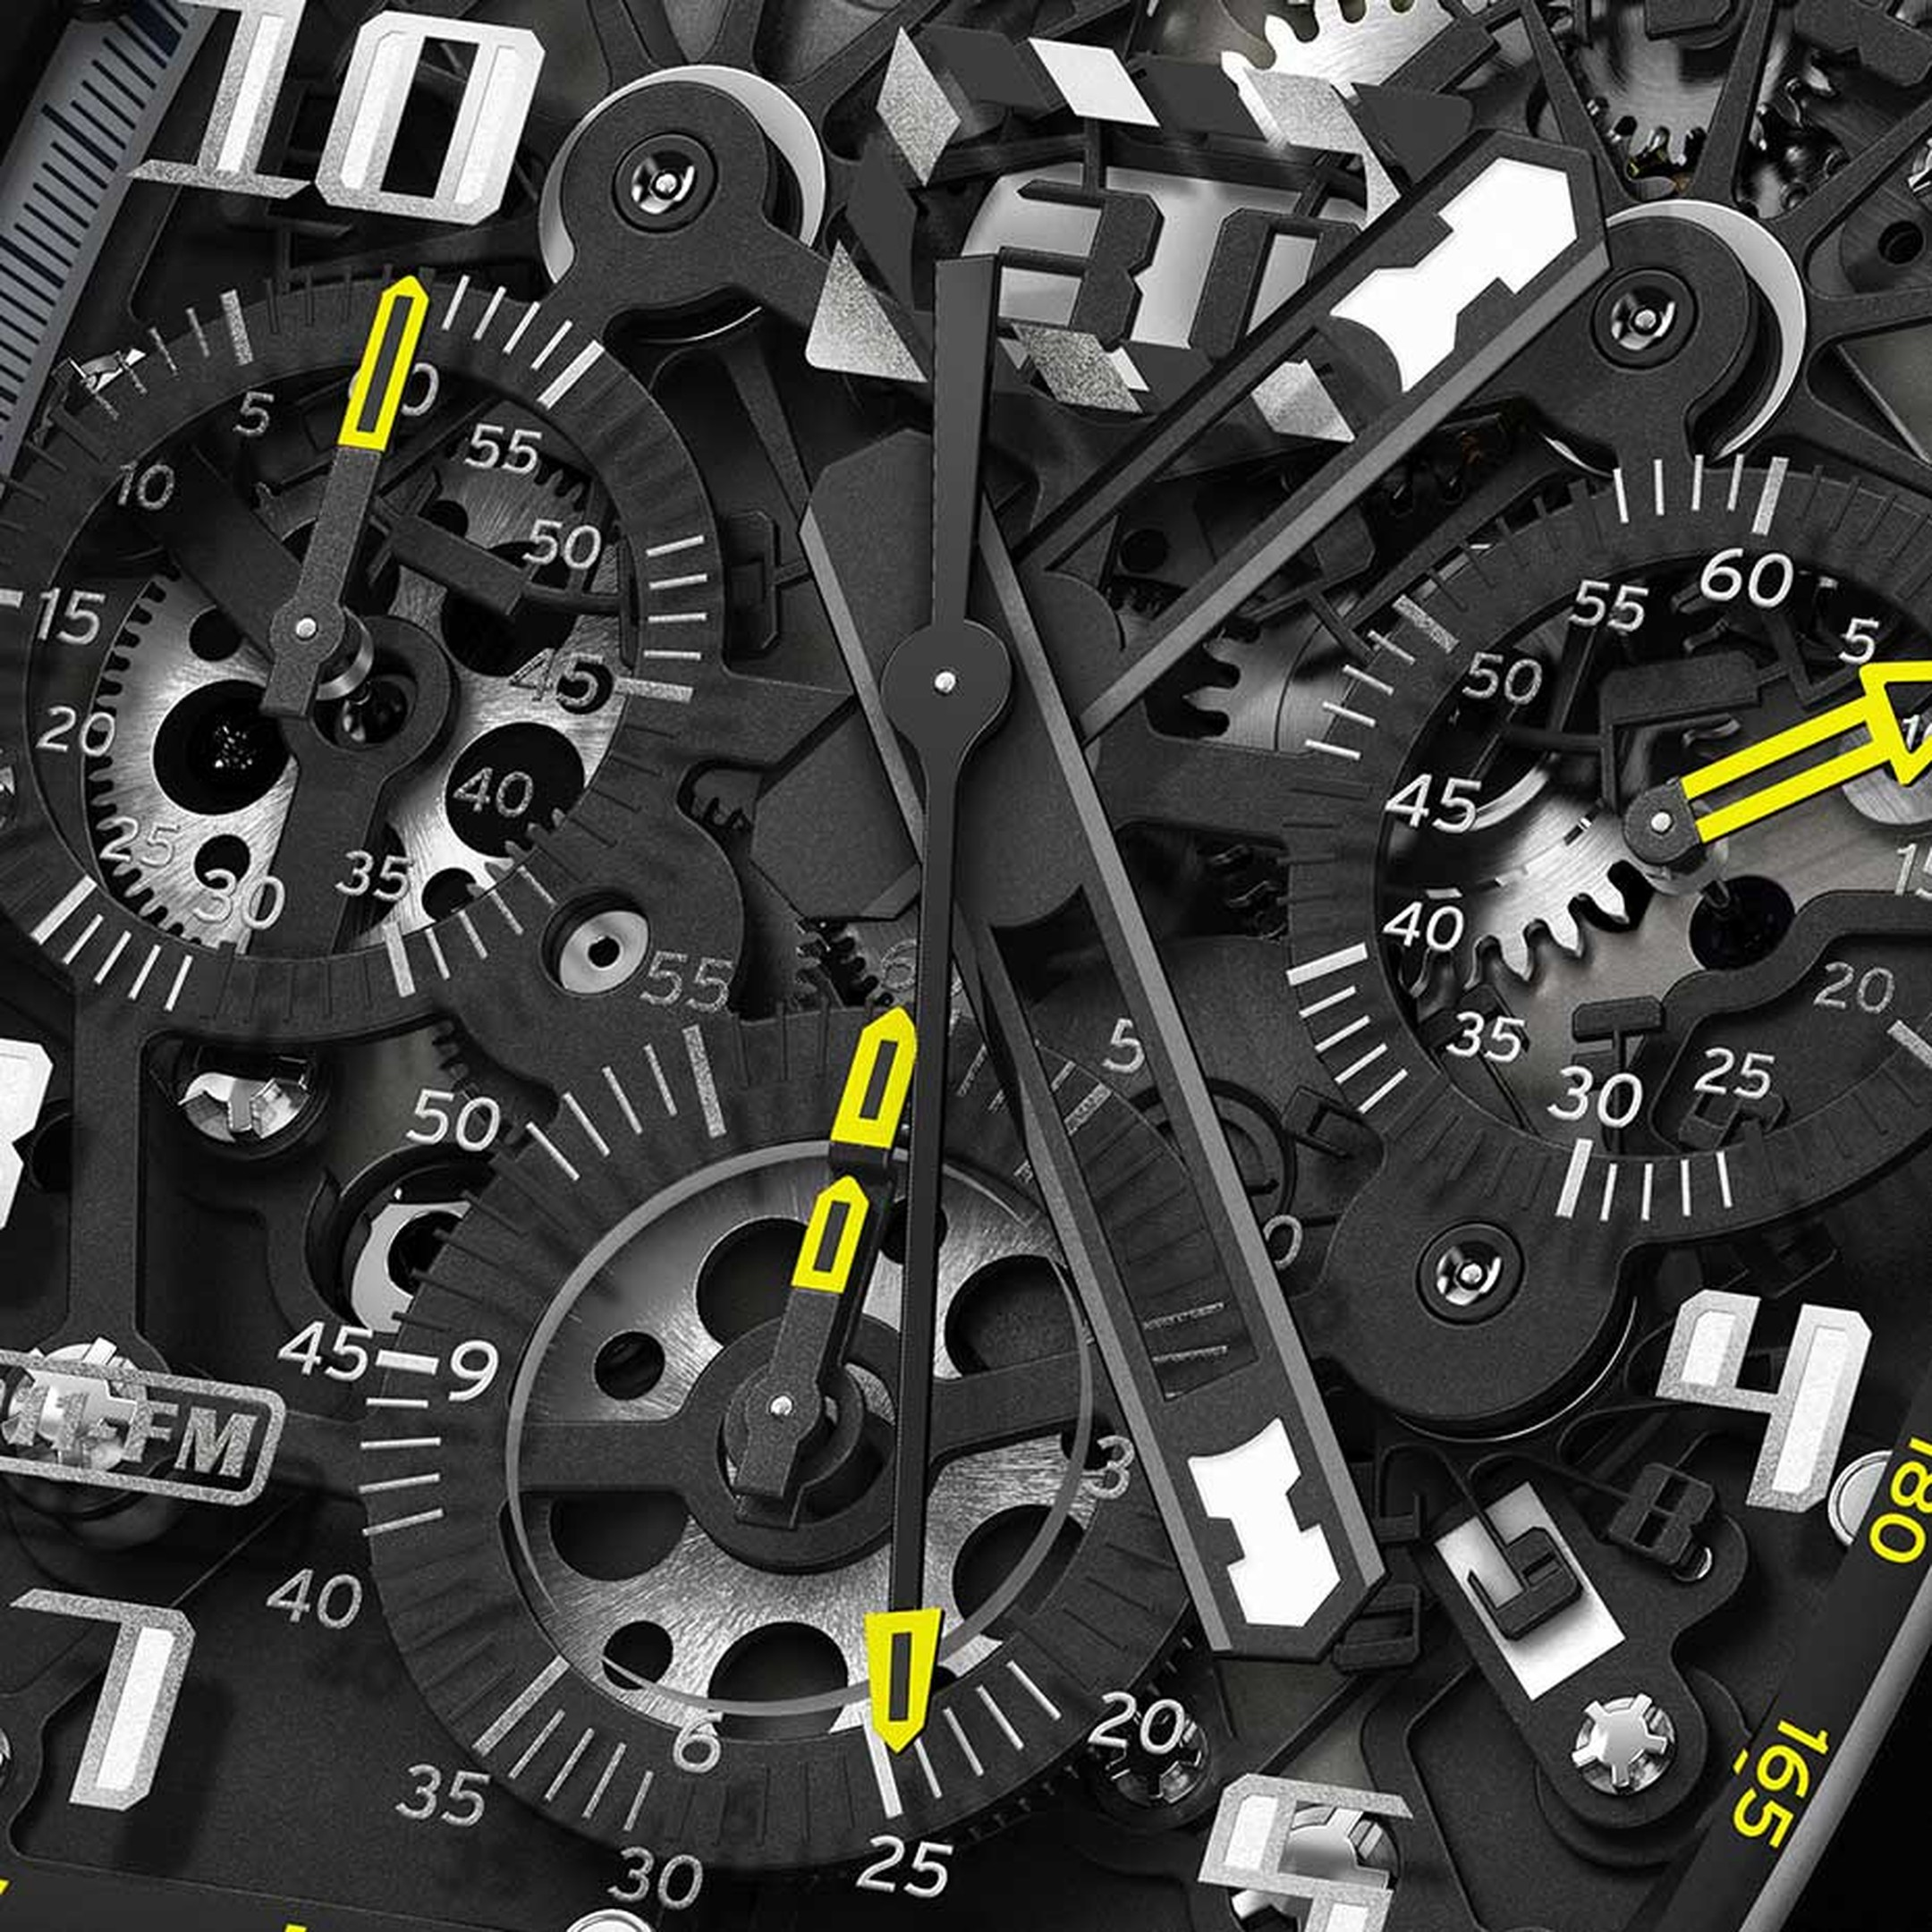 In keeping with the sleek, high-tech appeal of the new Richard Mille watches RM 011 Yellow Flash Automatic Flyback Chronograph, the skeletonised automatic movement has been blackened and features a rotor with variable geometry. A high-tech concoction of T